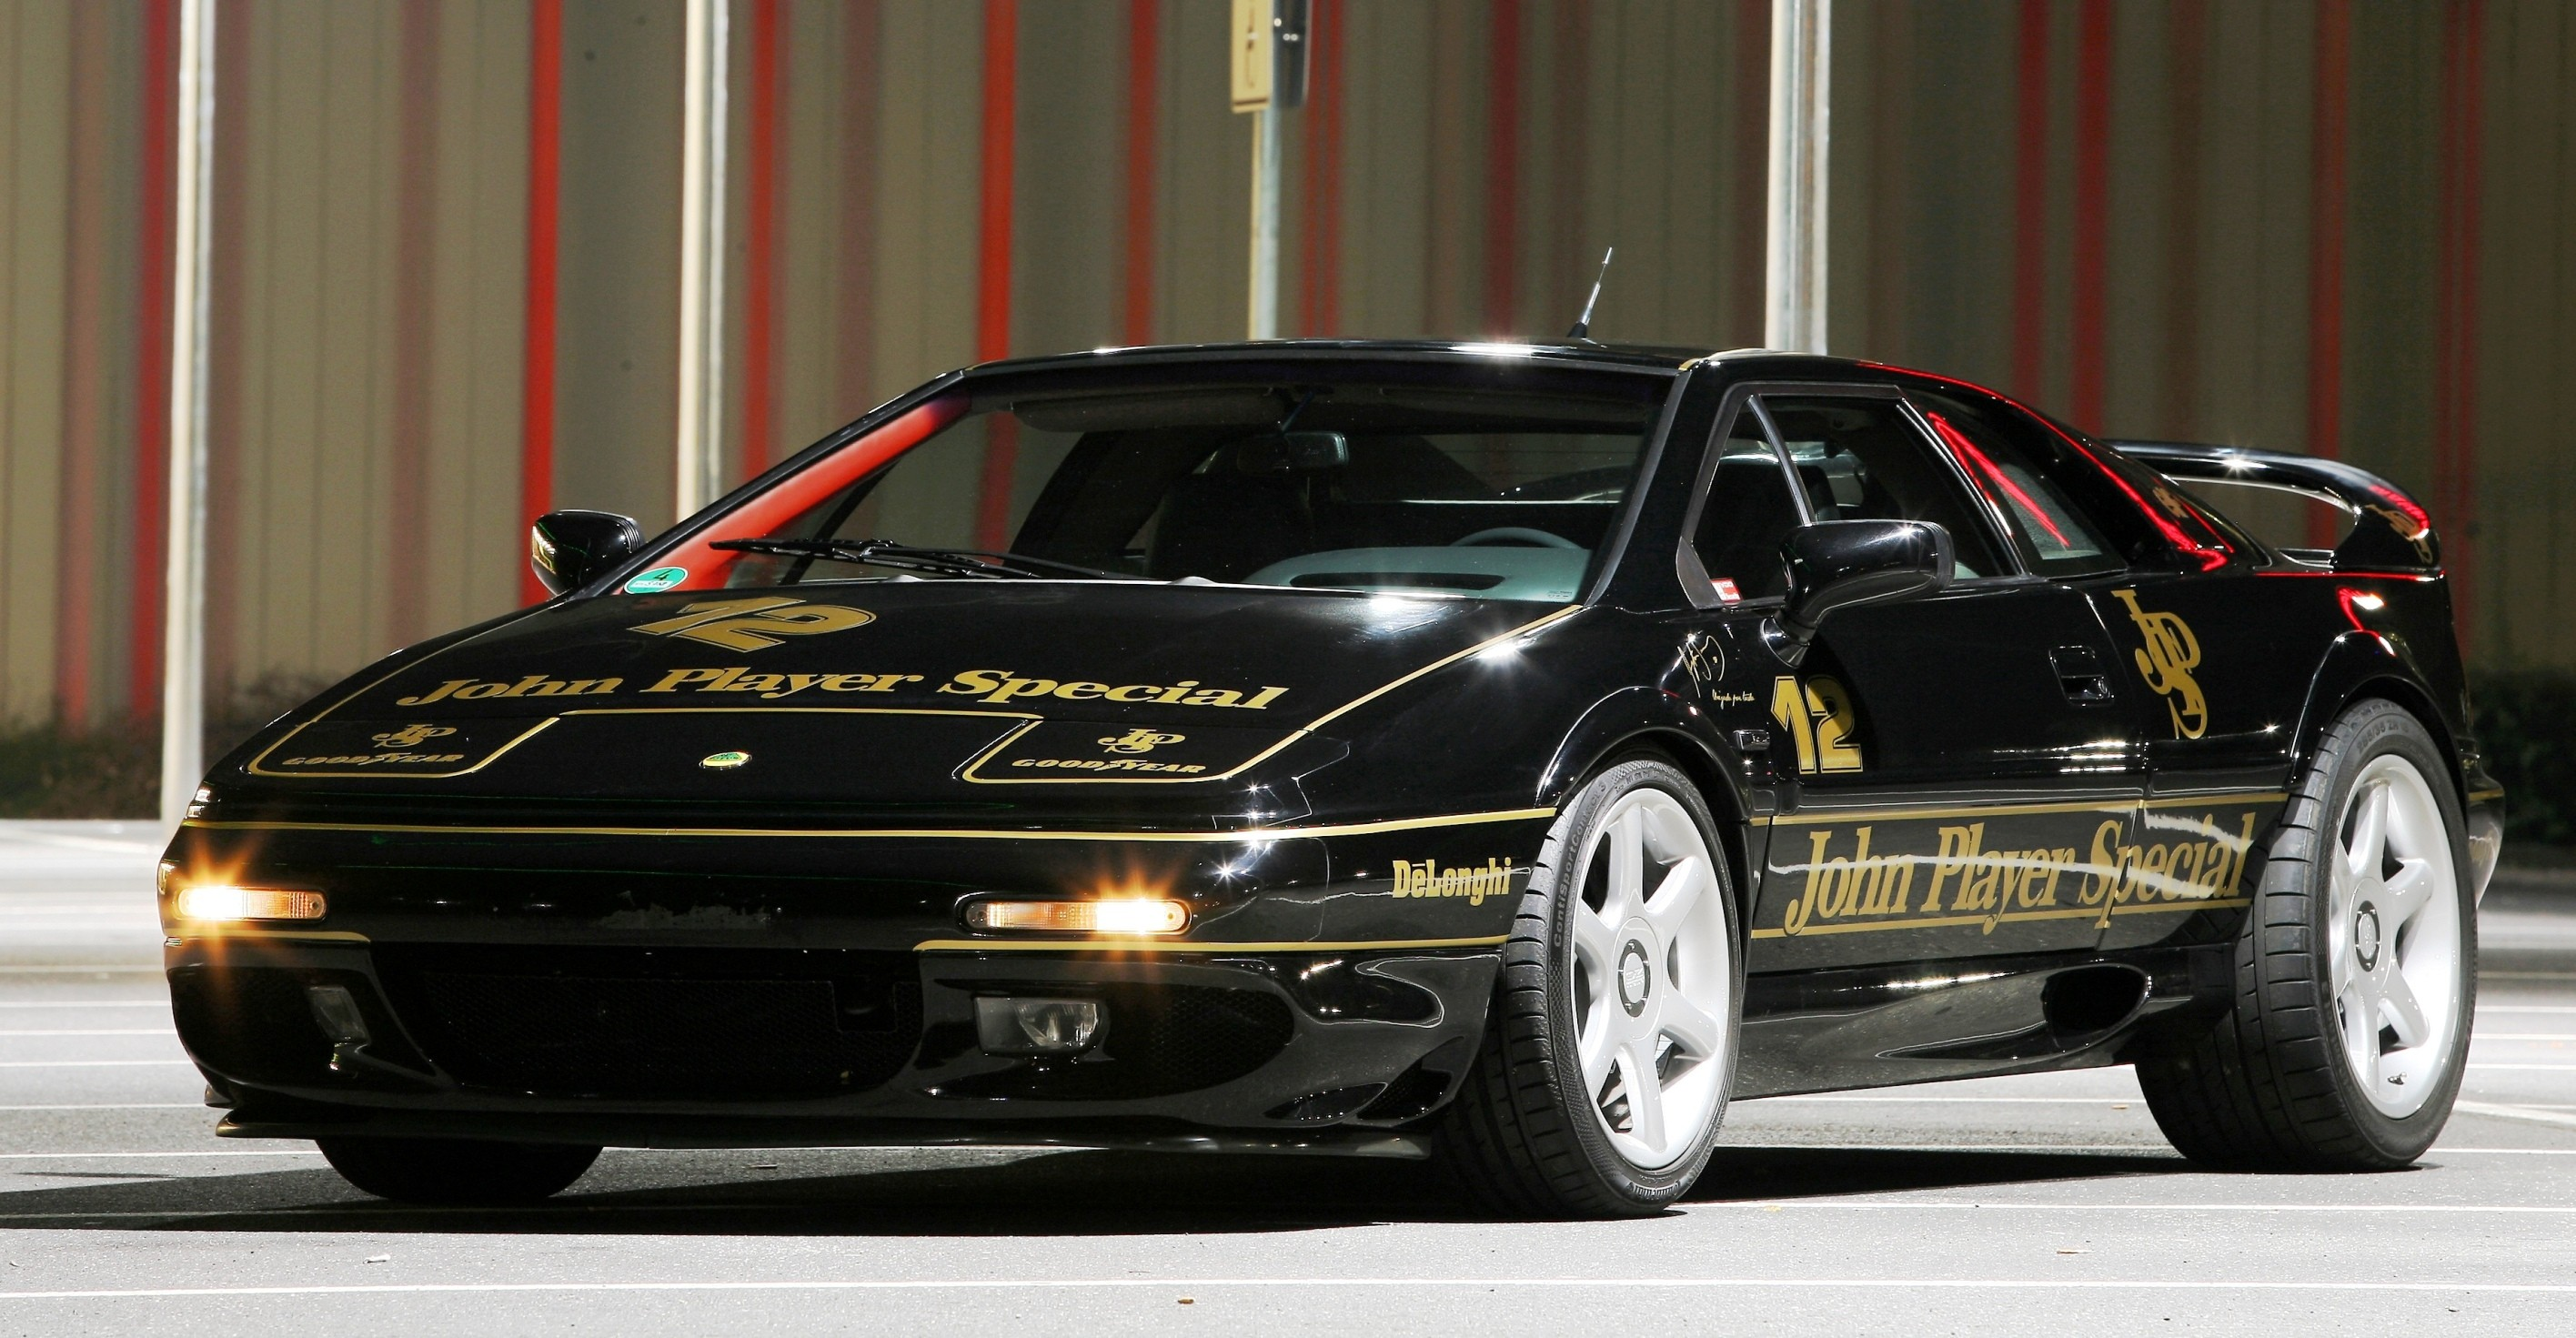 supercar racing wrap lotus esprit in ayrton senna jps livery by camshaft. Black Bedroom Furniture Sets. Home Design Ideas